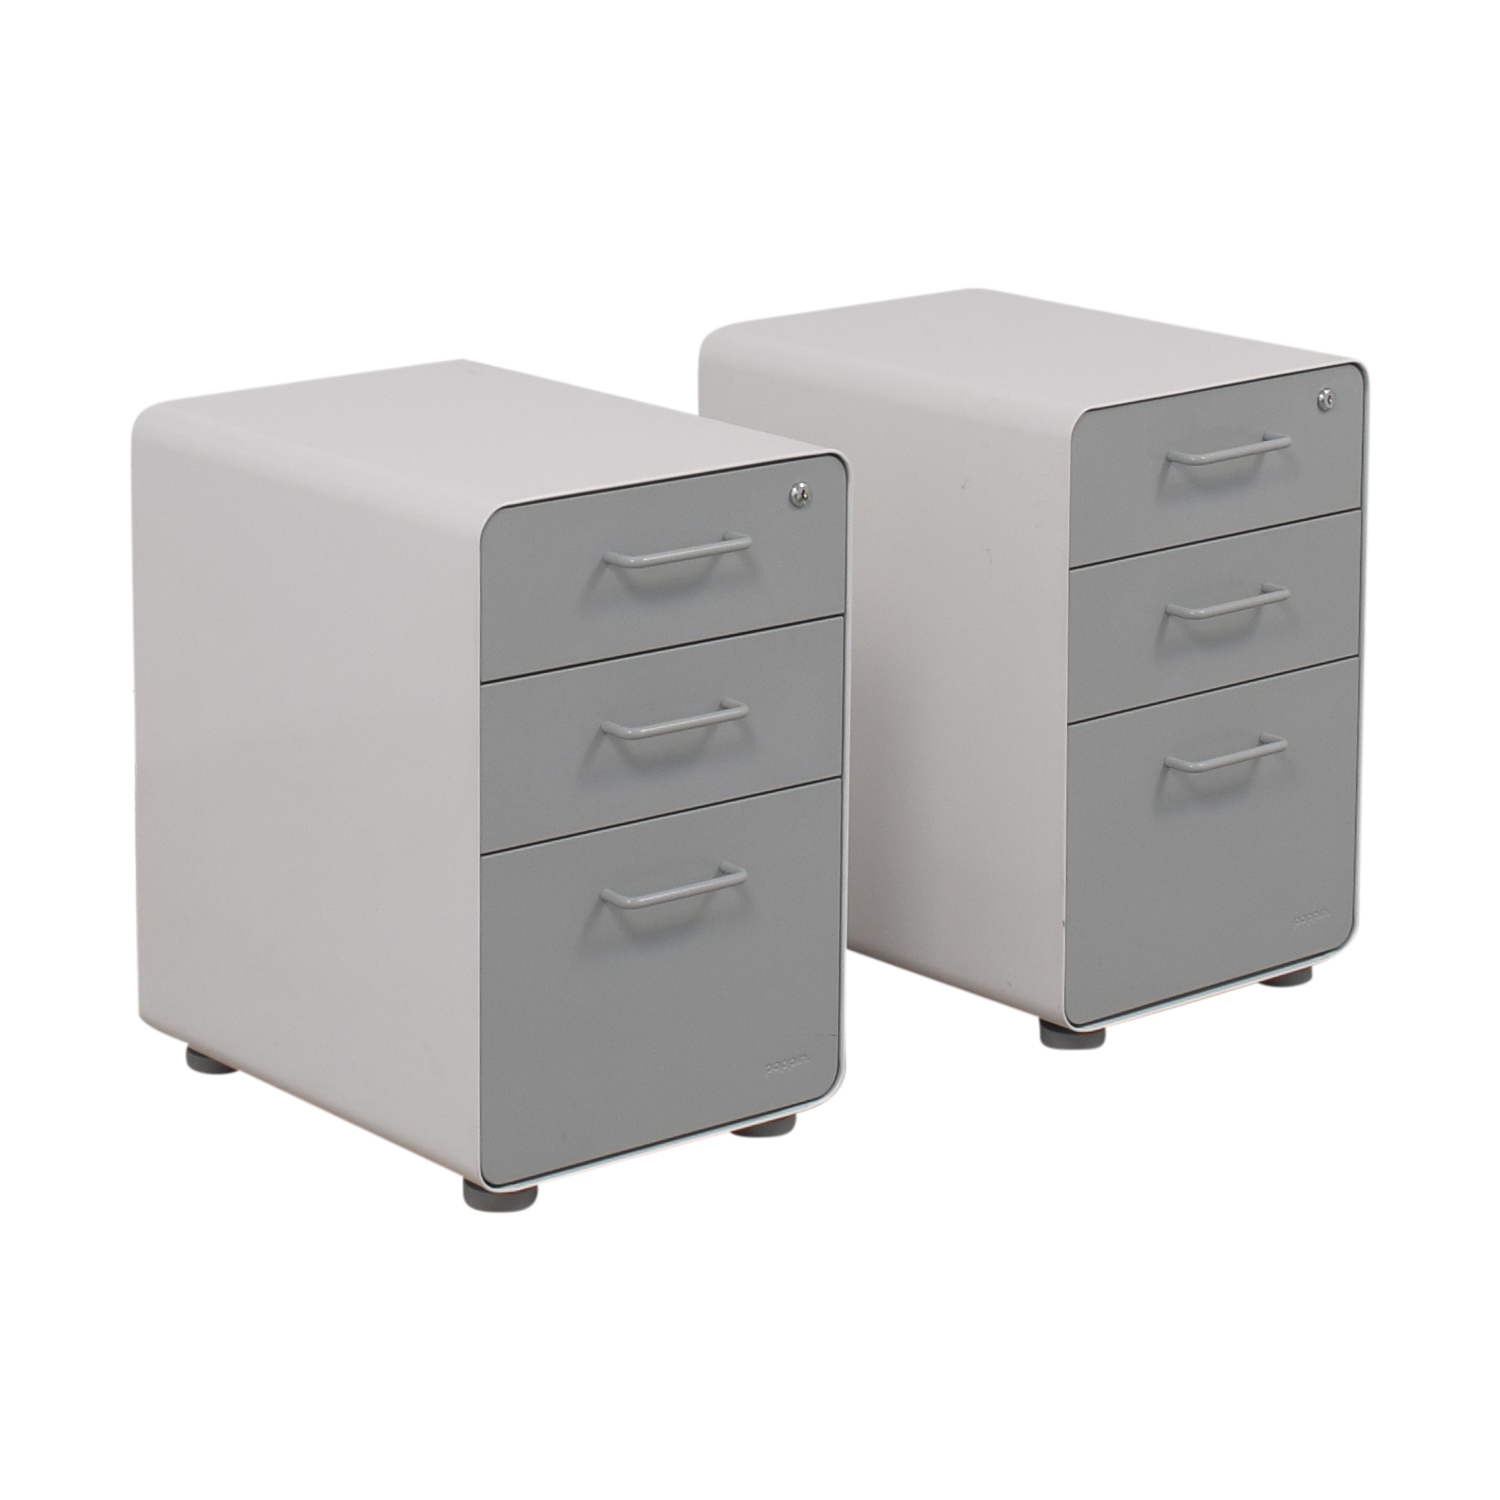 buy Poppin White and Grey Rolling Three-Drawer File Cabinets Poppin Storage